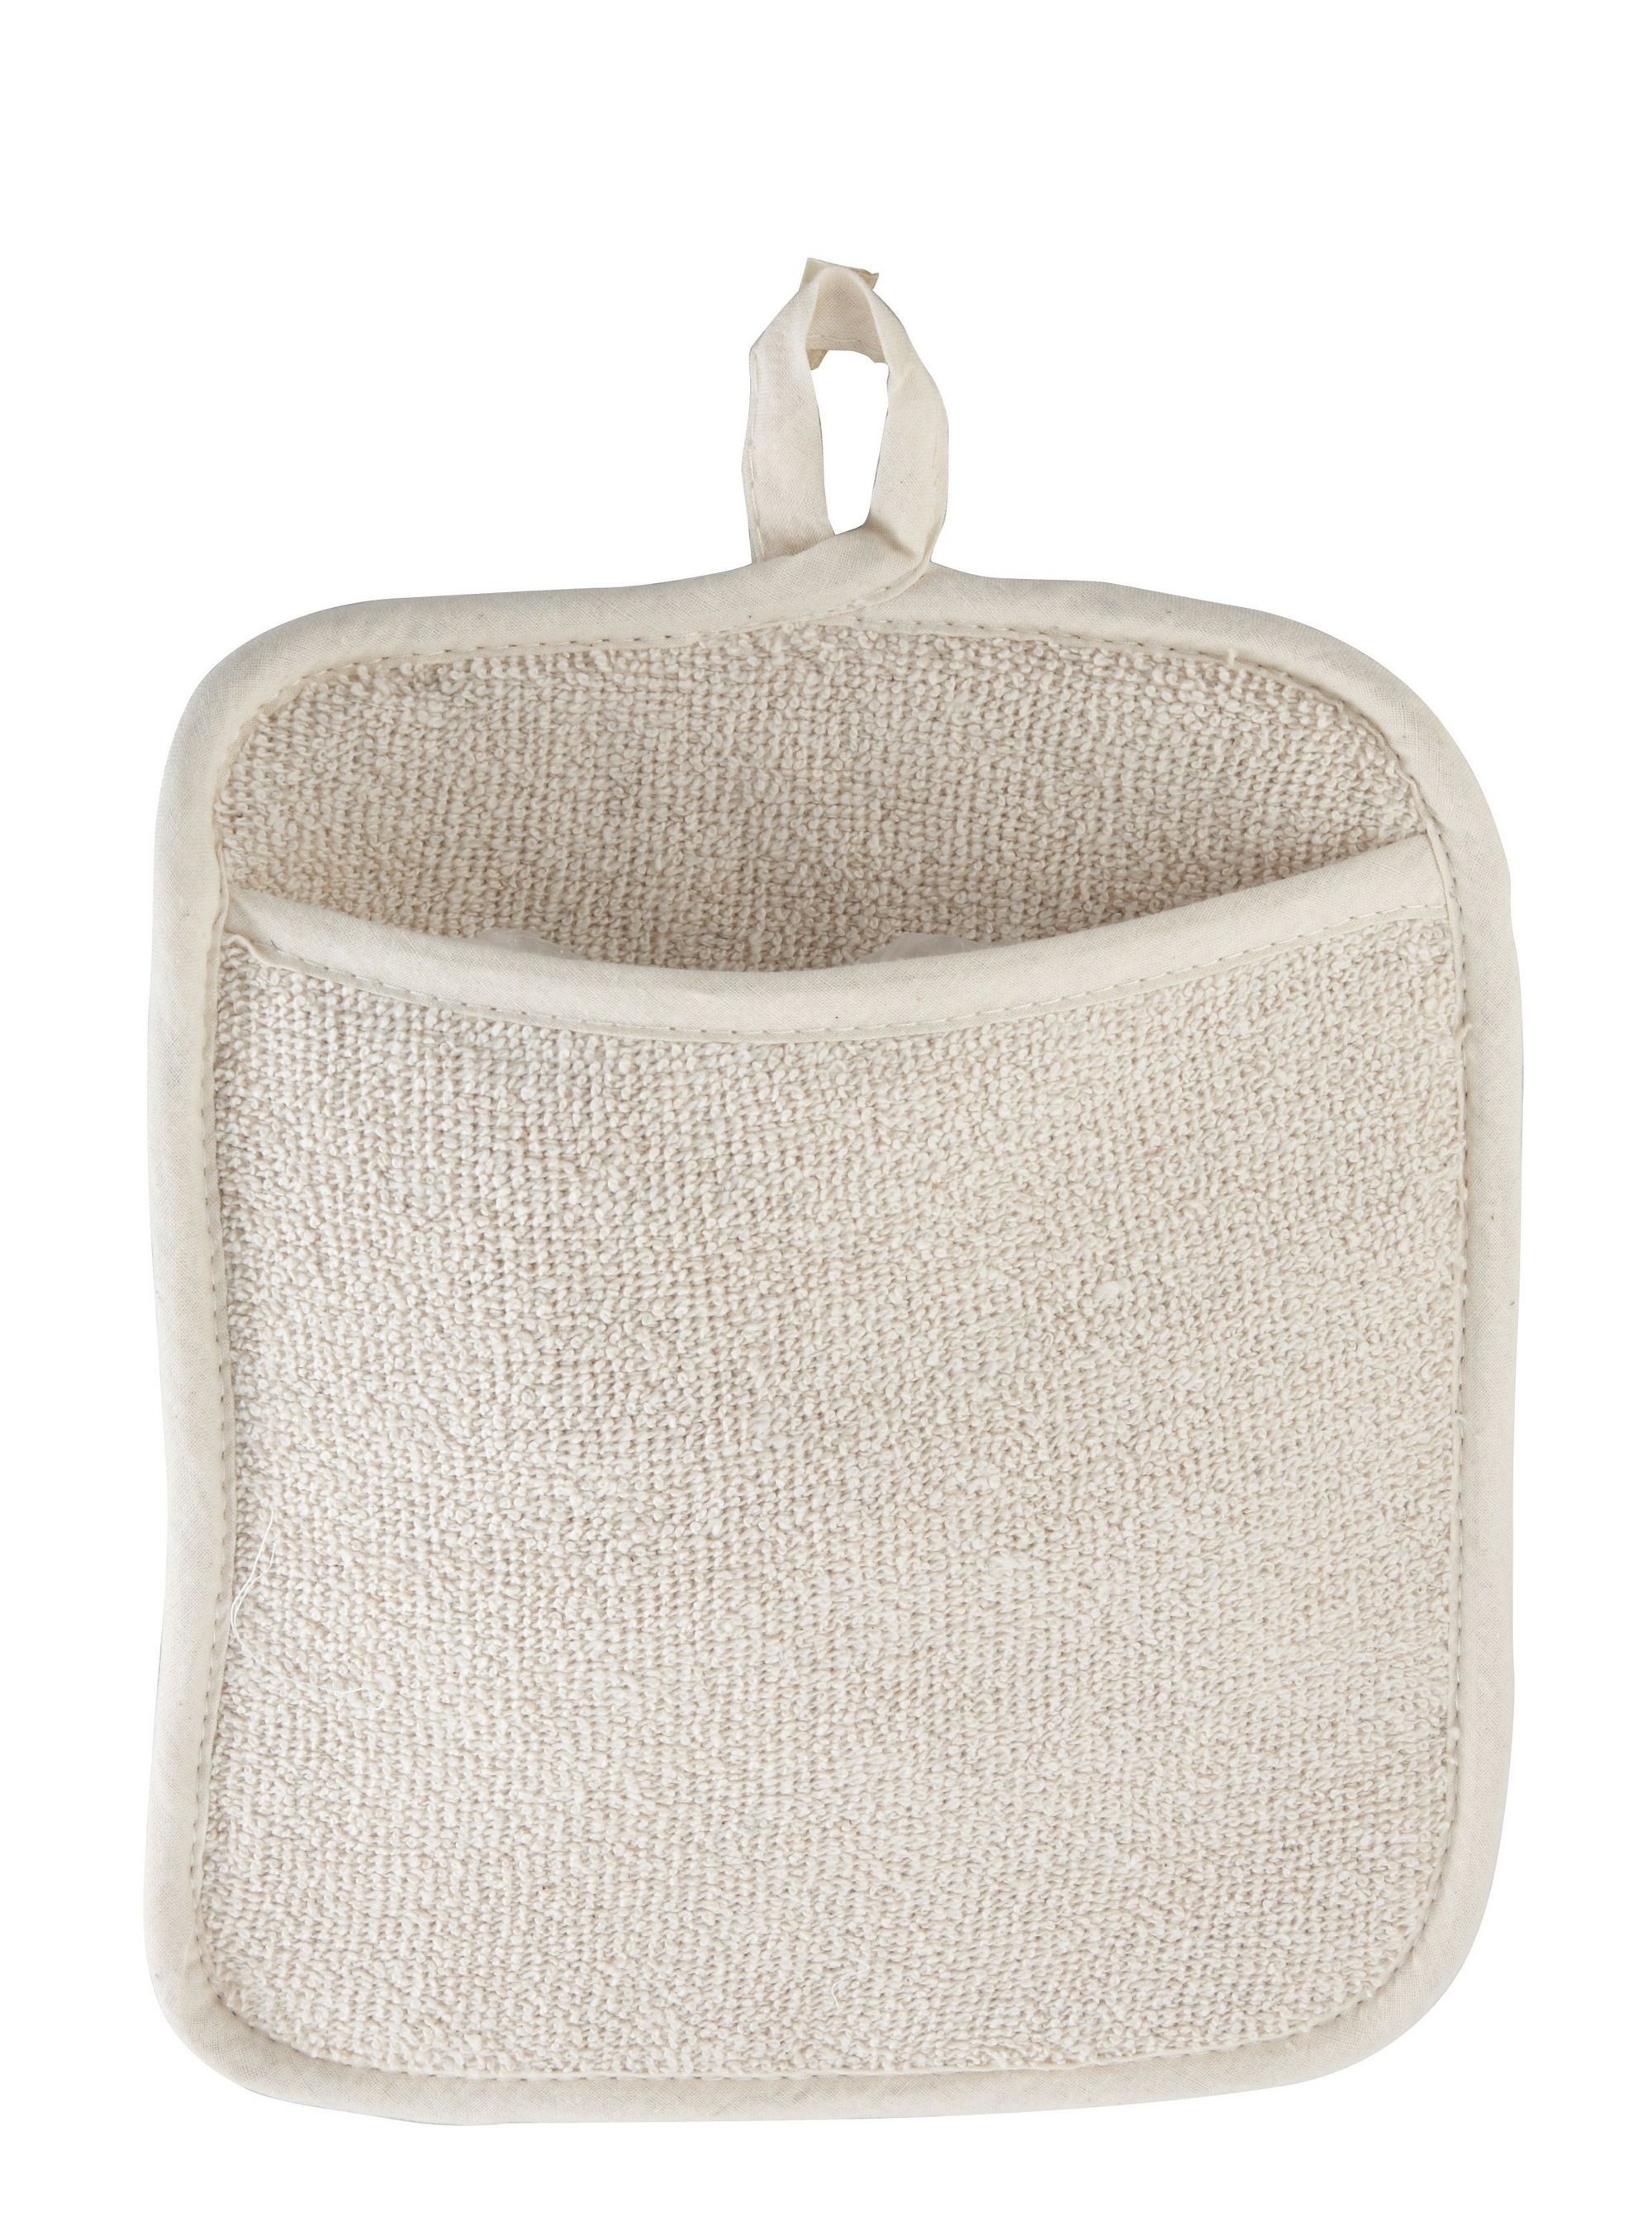 """Winco PH-9W White Terry Pot Holder with Pocket 8-1/2"""" x 9-1/2"""""""